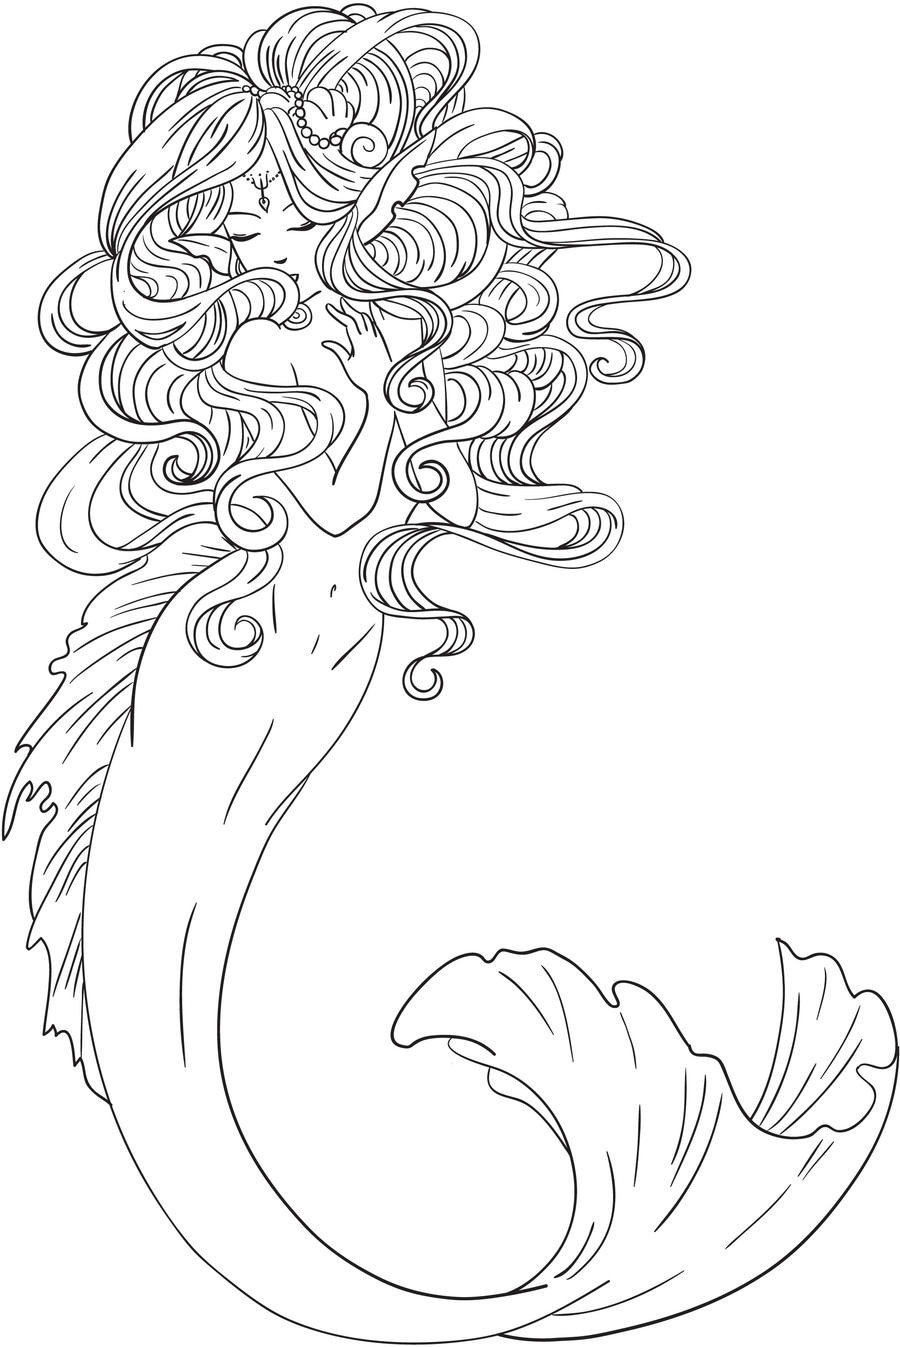 Line Art Mermaid : Lineart for mermaid by shynimoonstar on deviantart